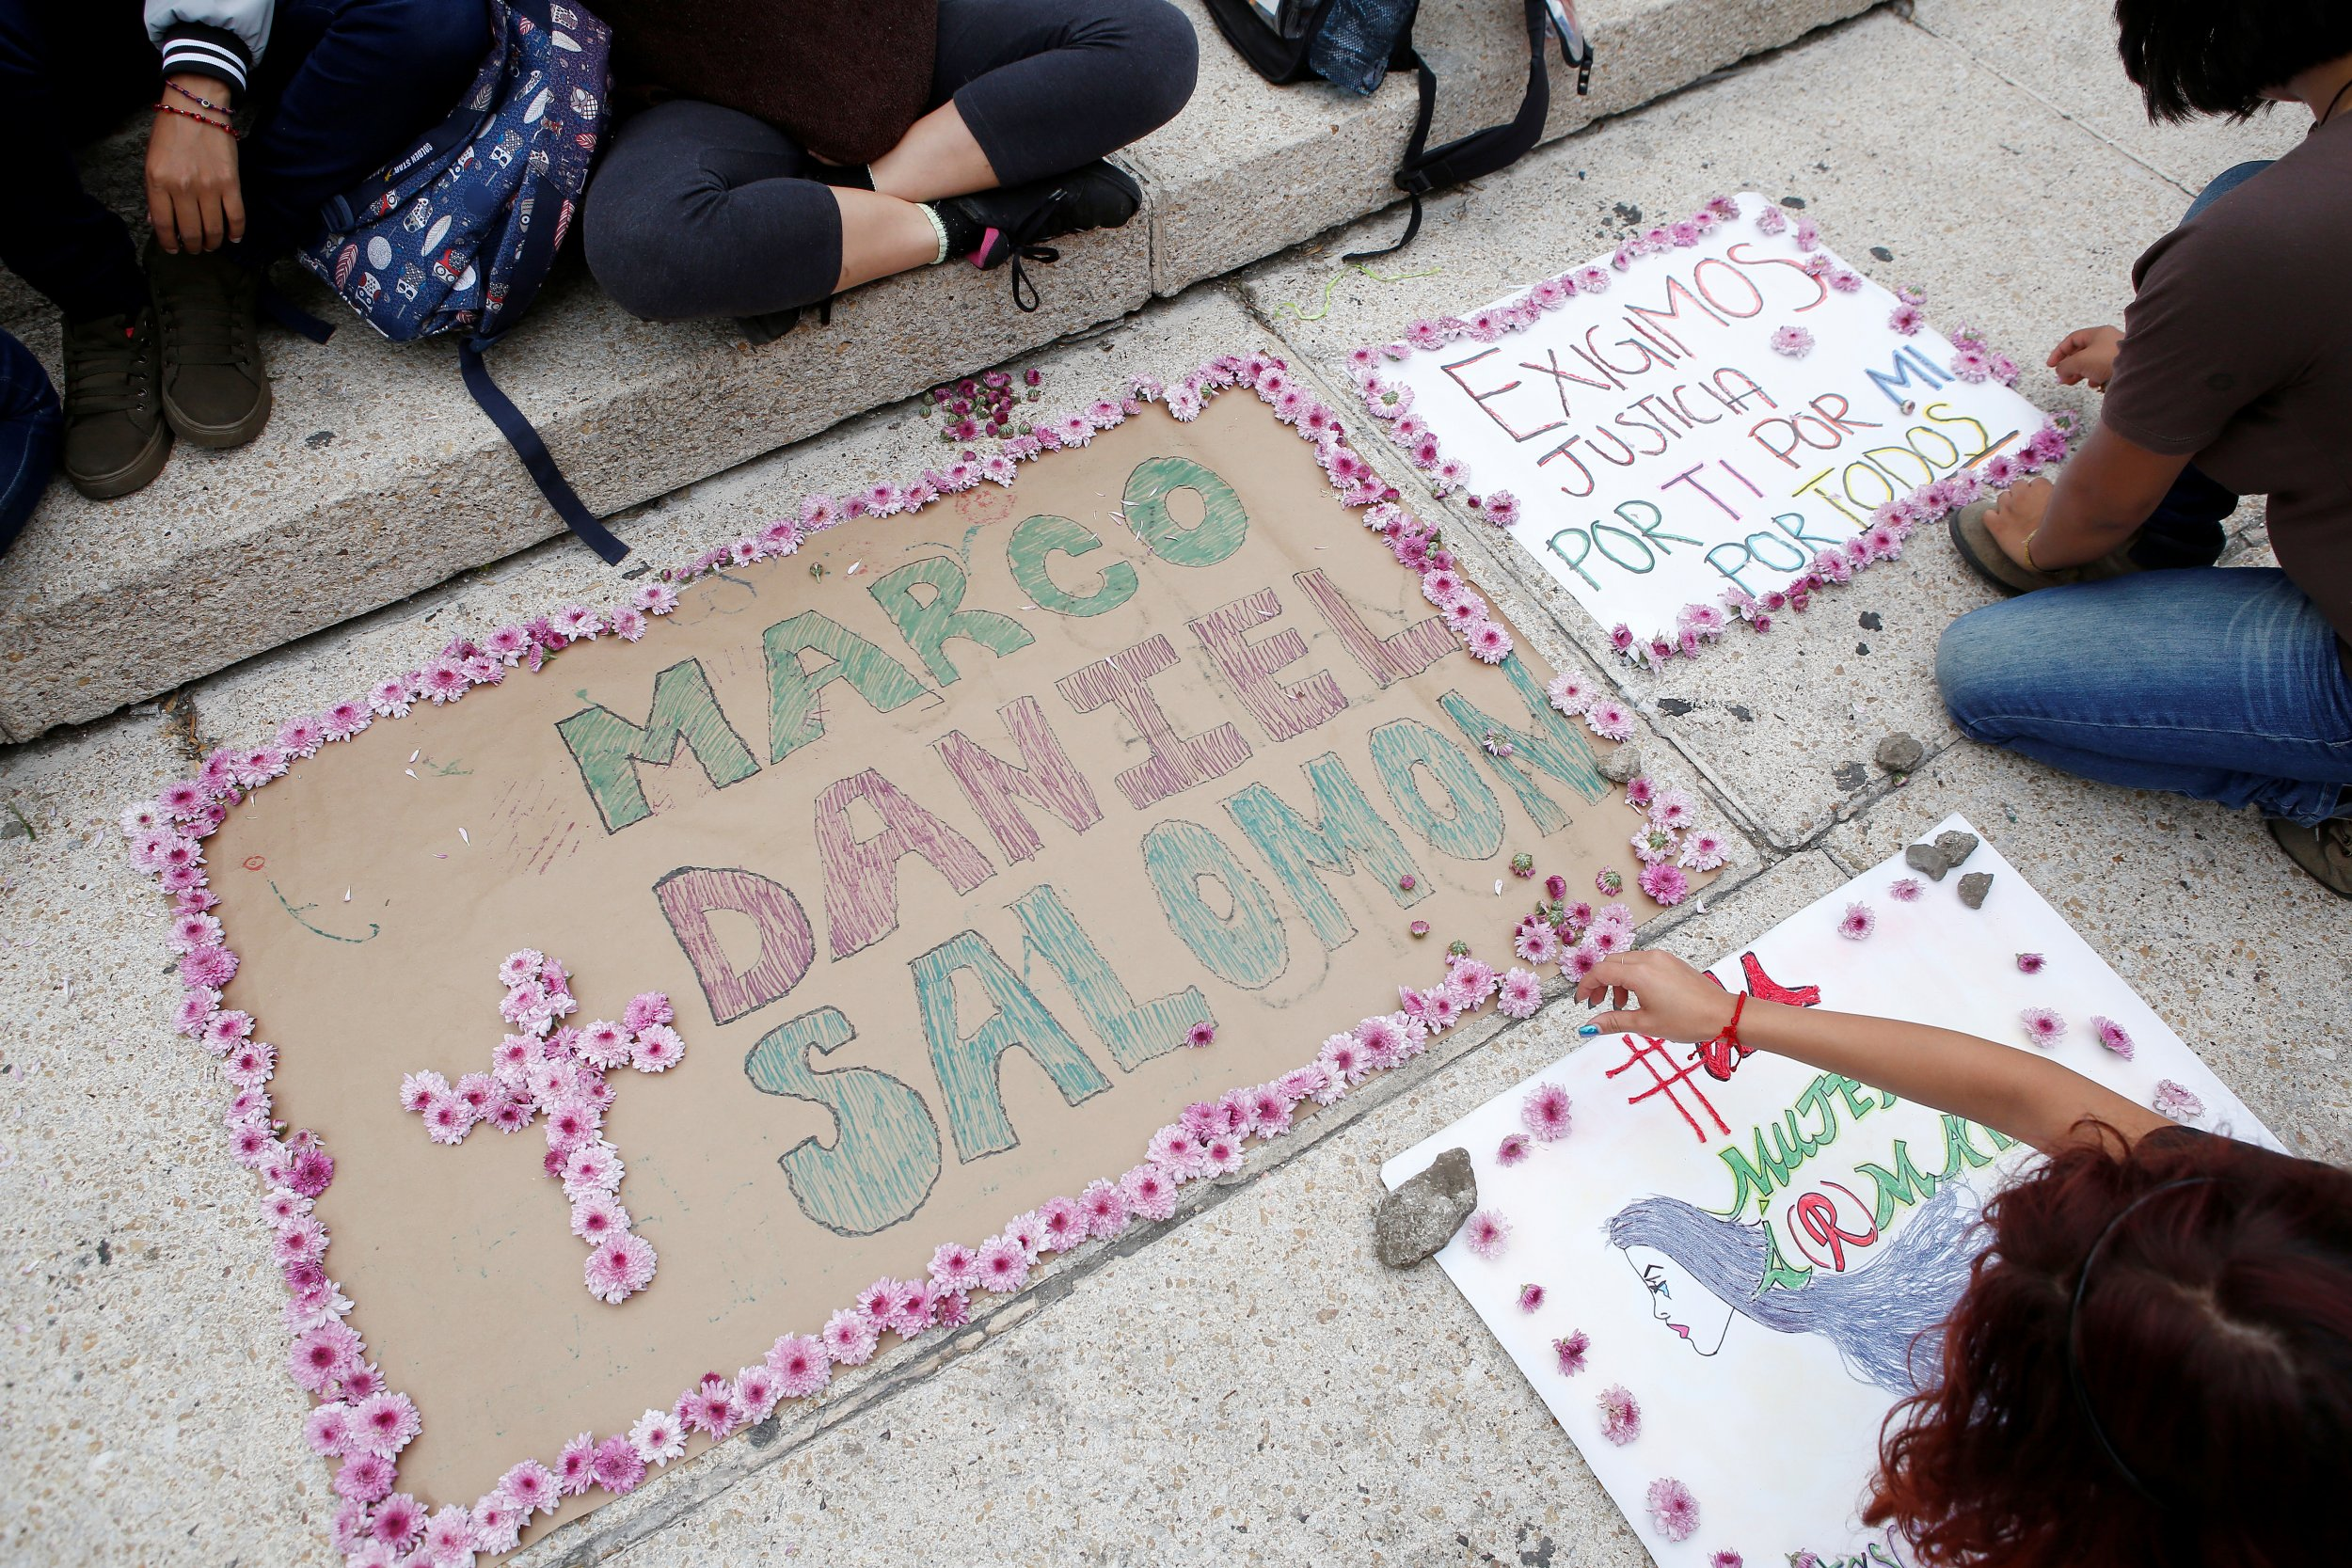 Mexico students killed demo